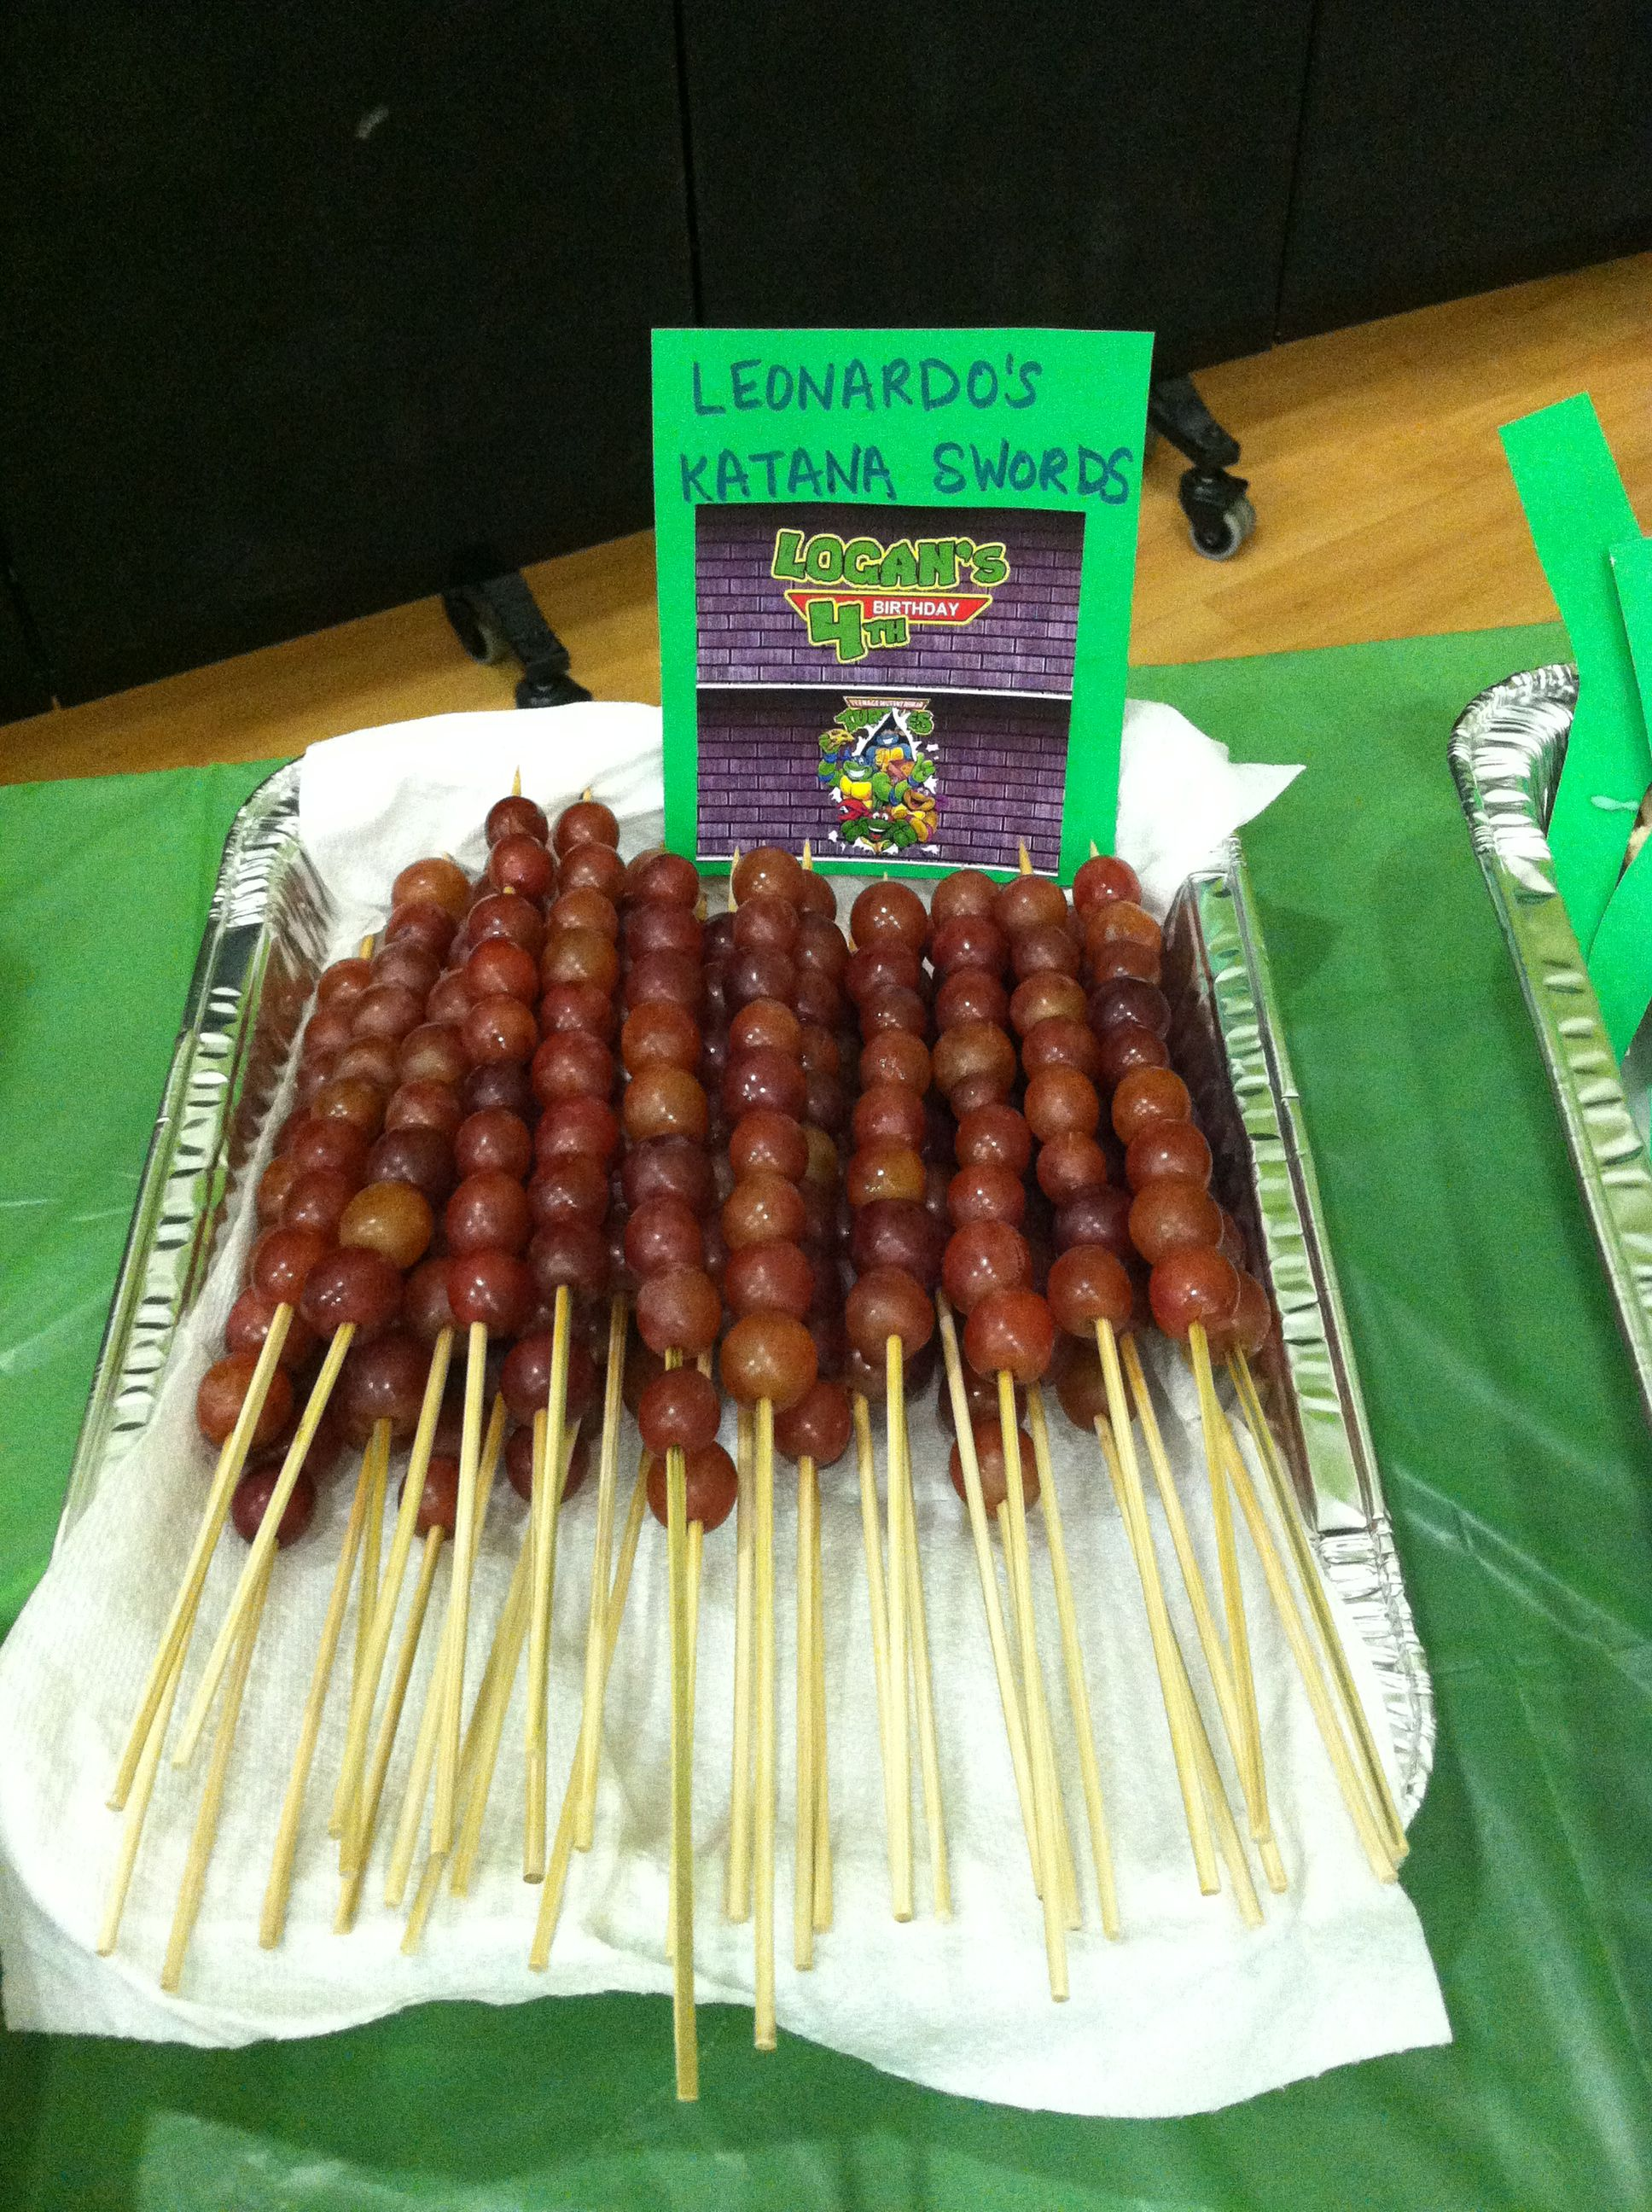 Pin By Janie Villarin On Logan S Teenage Mutant Ninja Turtle Birthday Party For Our 4 Year Old Ninja Turtles Birthday Party Teenage Mutant Ninja Turtles Birthday Party Ninja Turtle Party